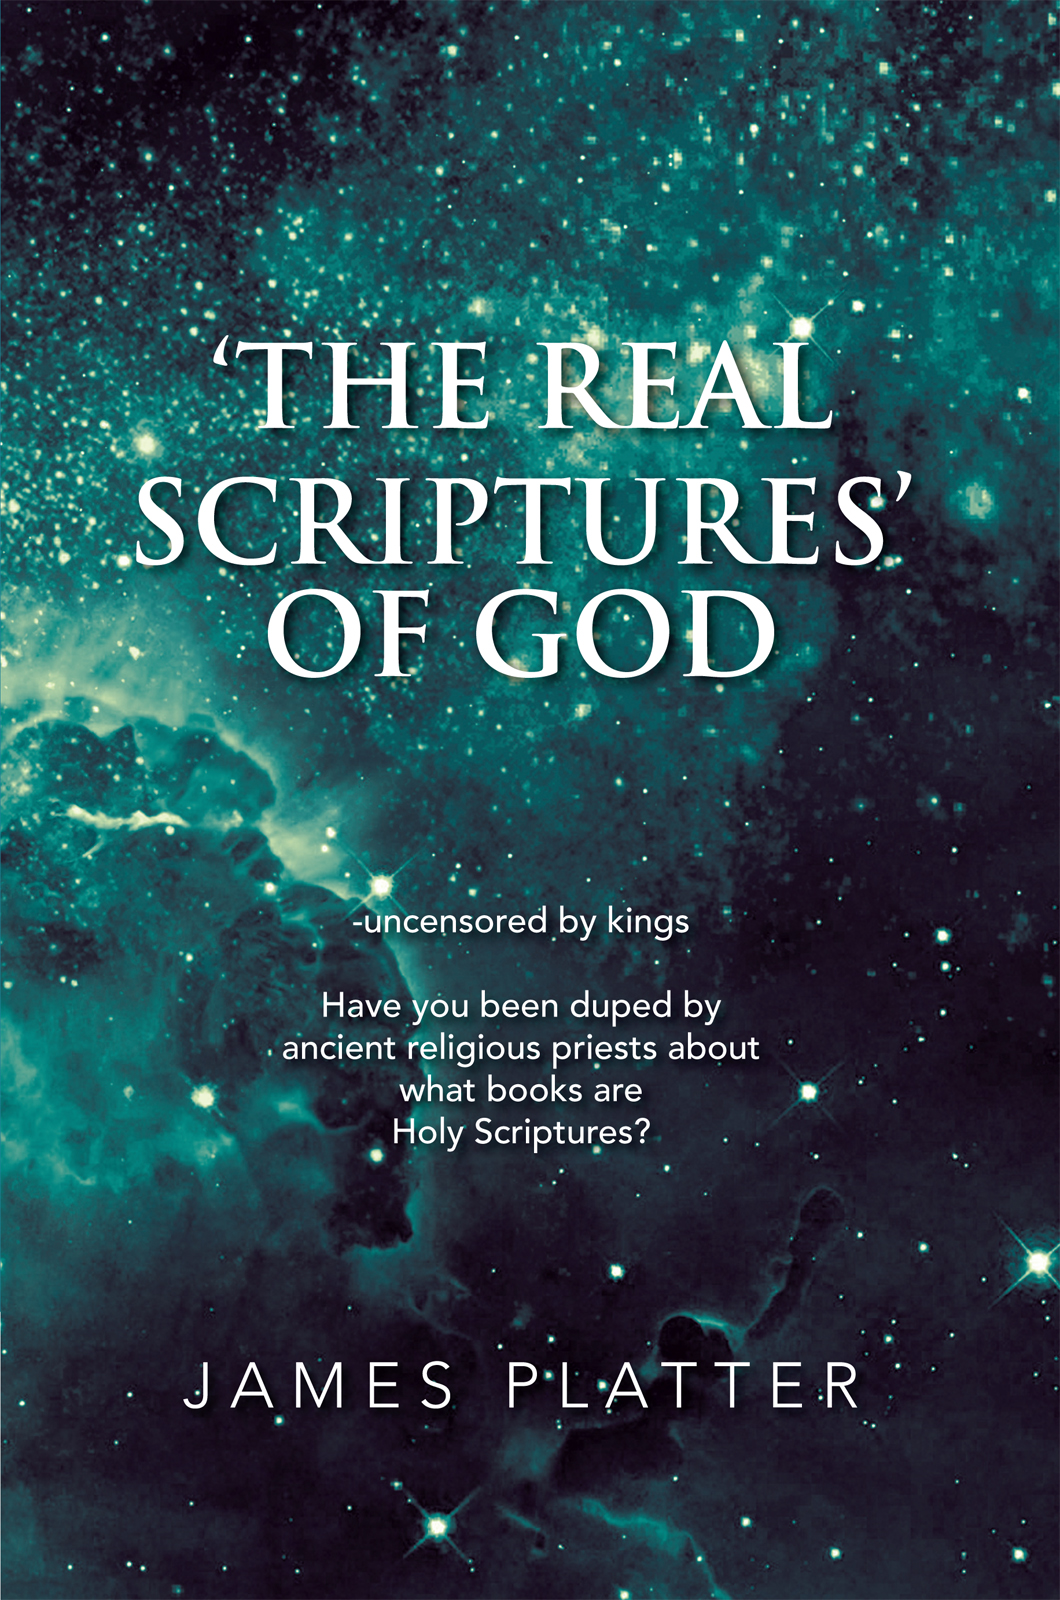 'The Real Scriptures' of God